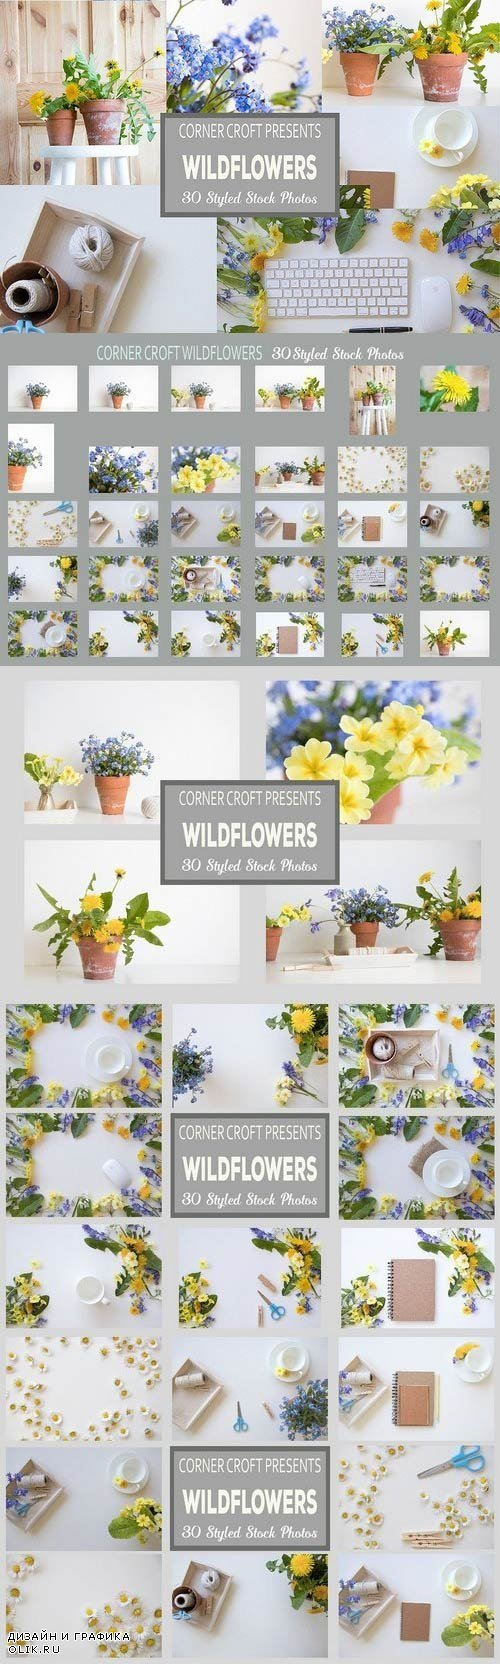 Wildflower Styled Stock Photo Bundle 1478836